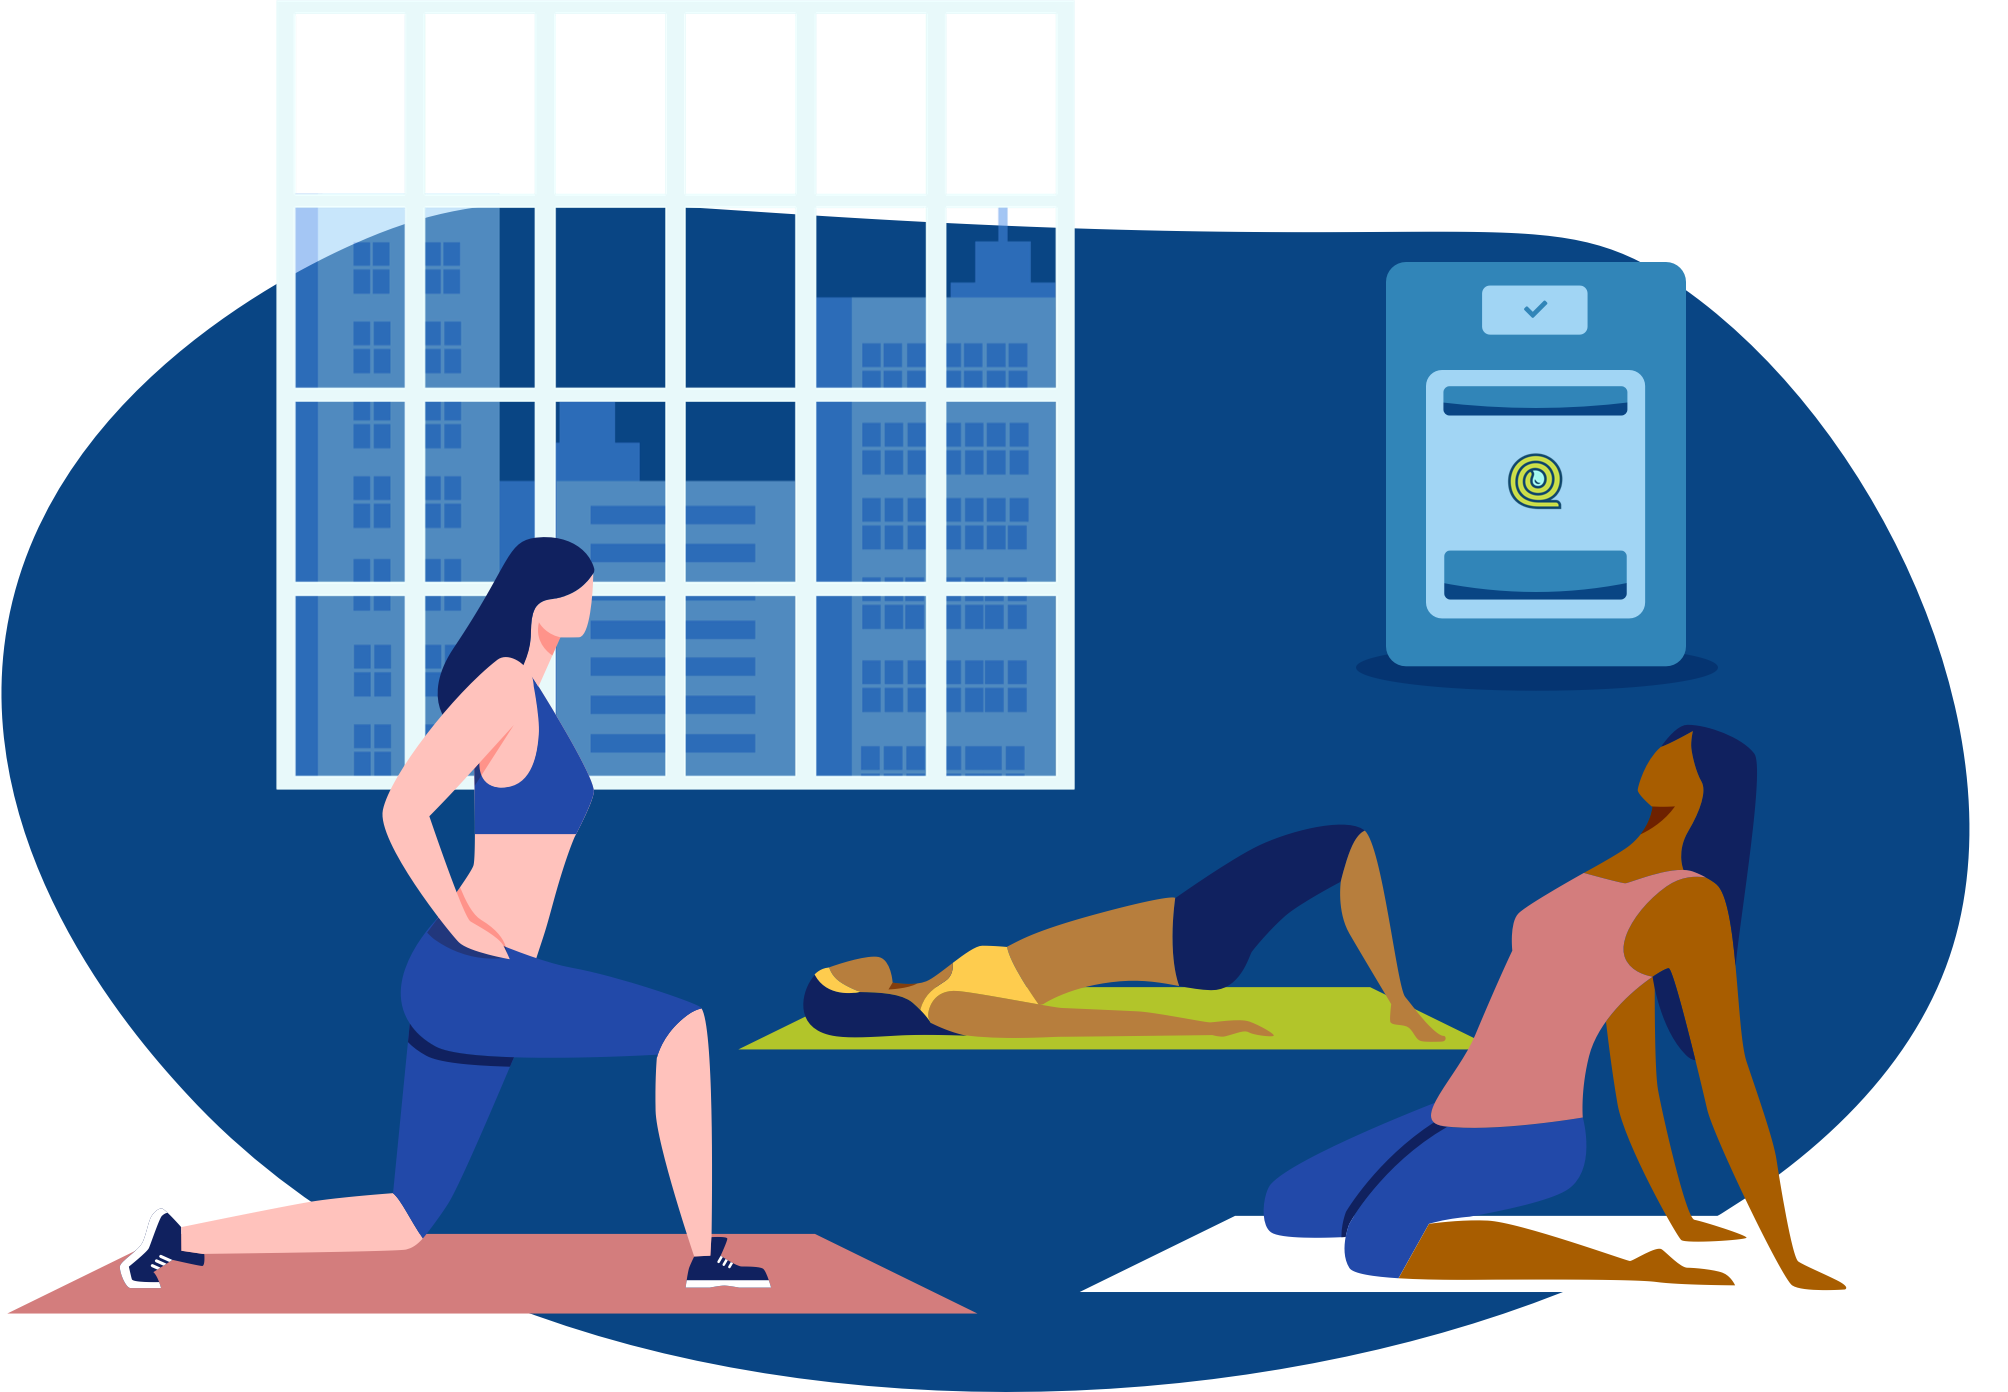 Three women in various poses on clean exercise mats within a MatFresher fitness center.